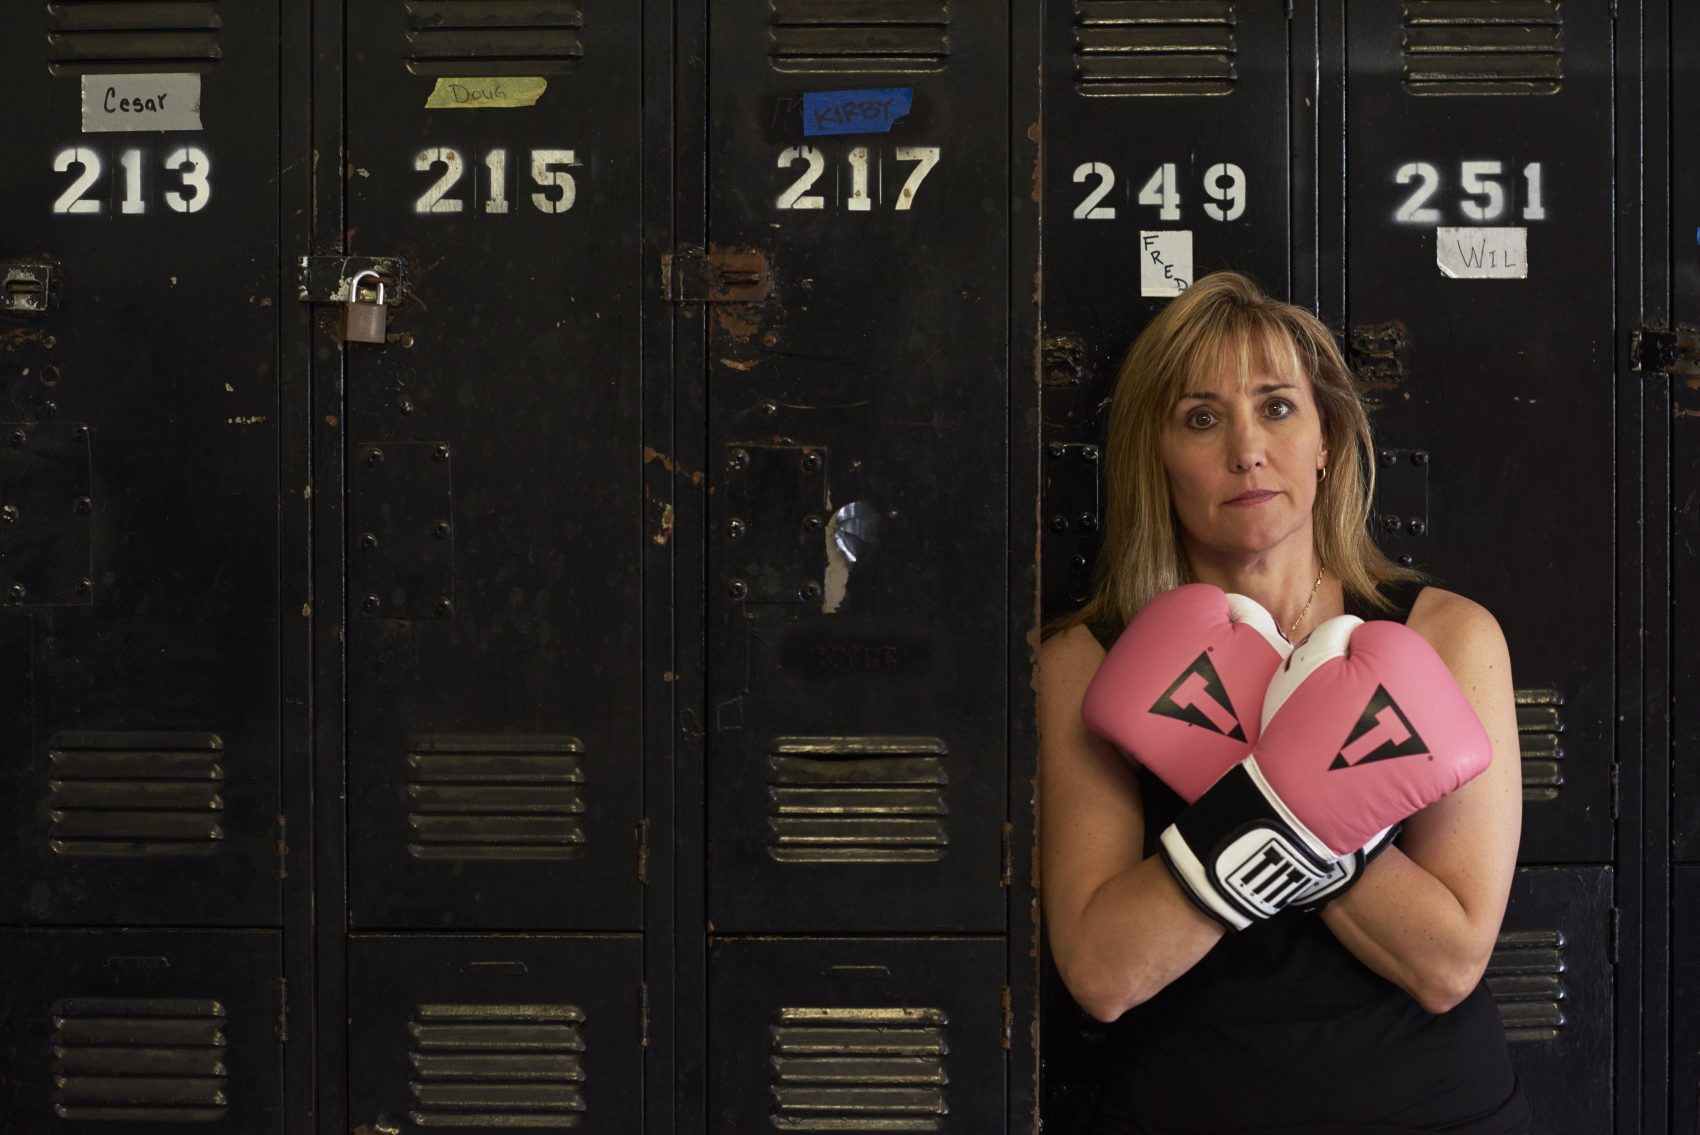 In 1996, Christy Martin was a champion boxer and on the cover of Sports Illustrated. In 2010, she was stabbed, shot and left for dead. (Bill Frakes/SI)